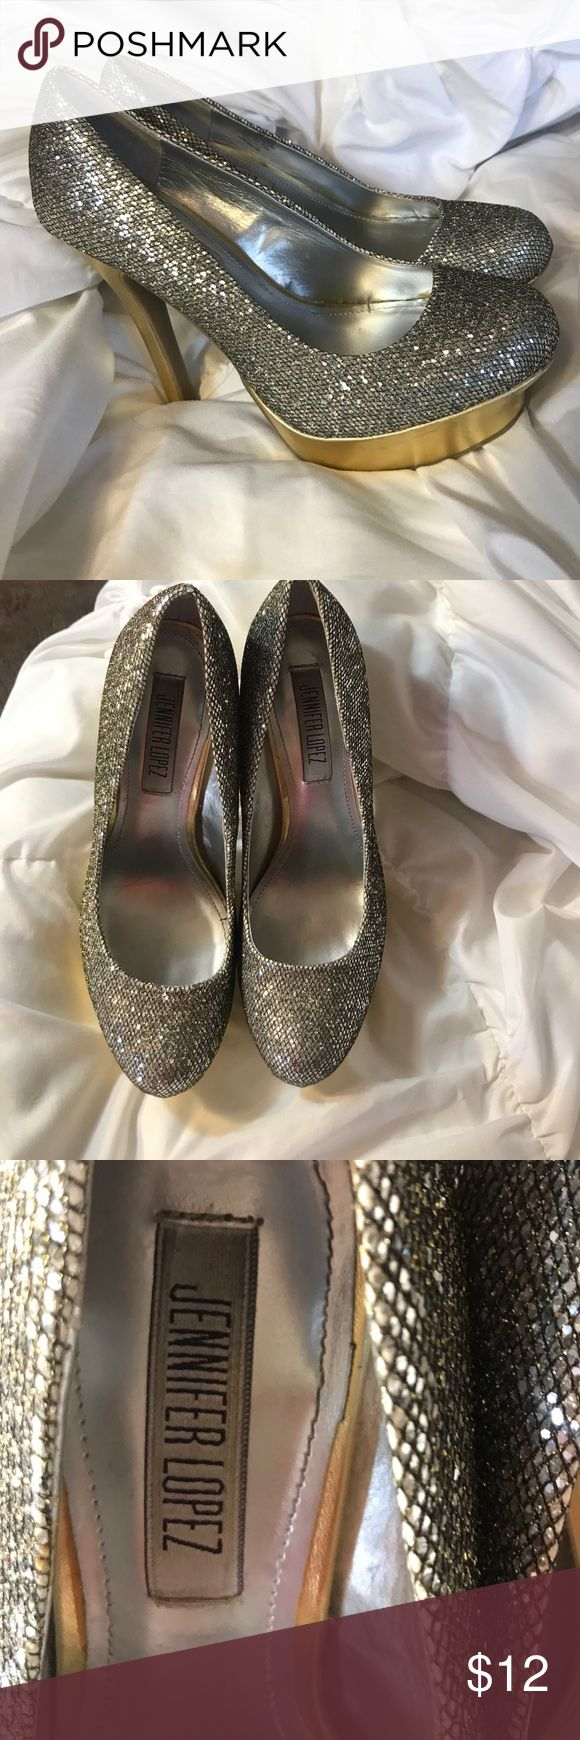 Jennifer Lopez glitter heels Jennifer Lopez glitter heels . Few small scratches but can be fixed with a gold sharpie . Size 6. I have a rep box I can send them In Jennifer Lopez Shoes Heels